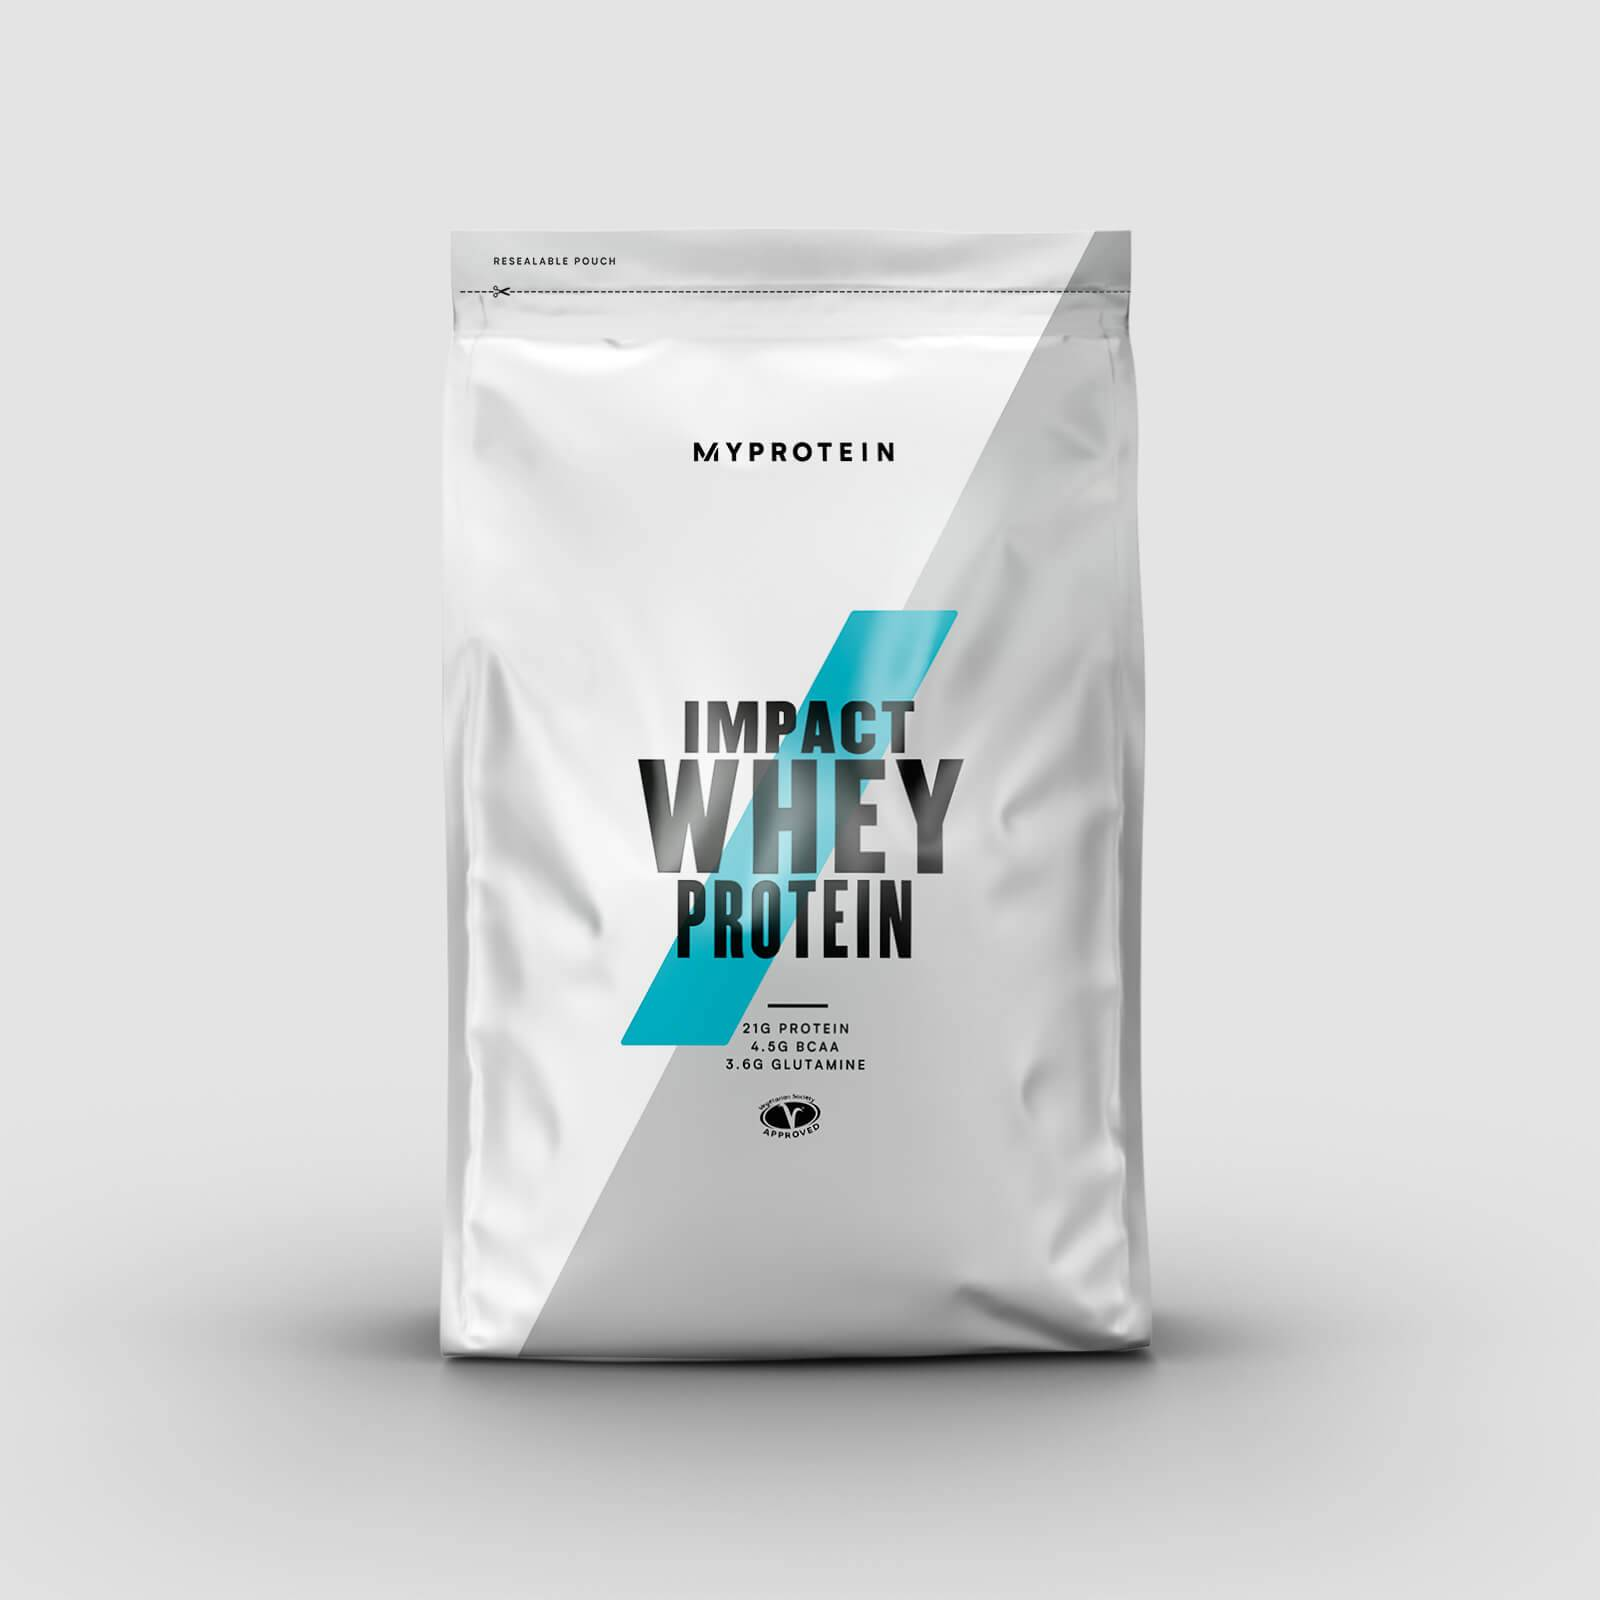 Myprotein Impact Whey Protein - 5kg - Rocky Road - New and Improved